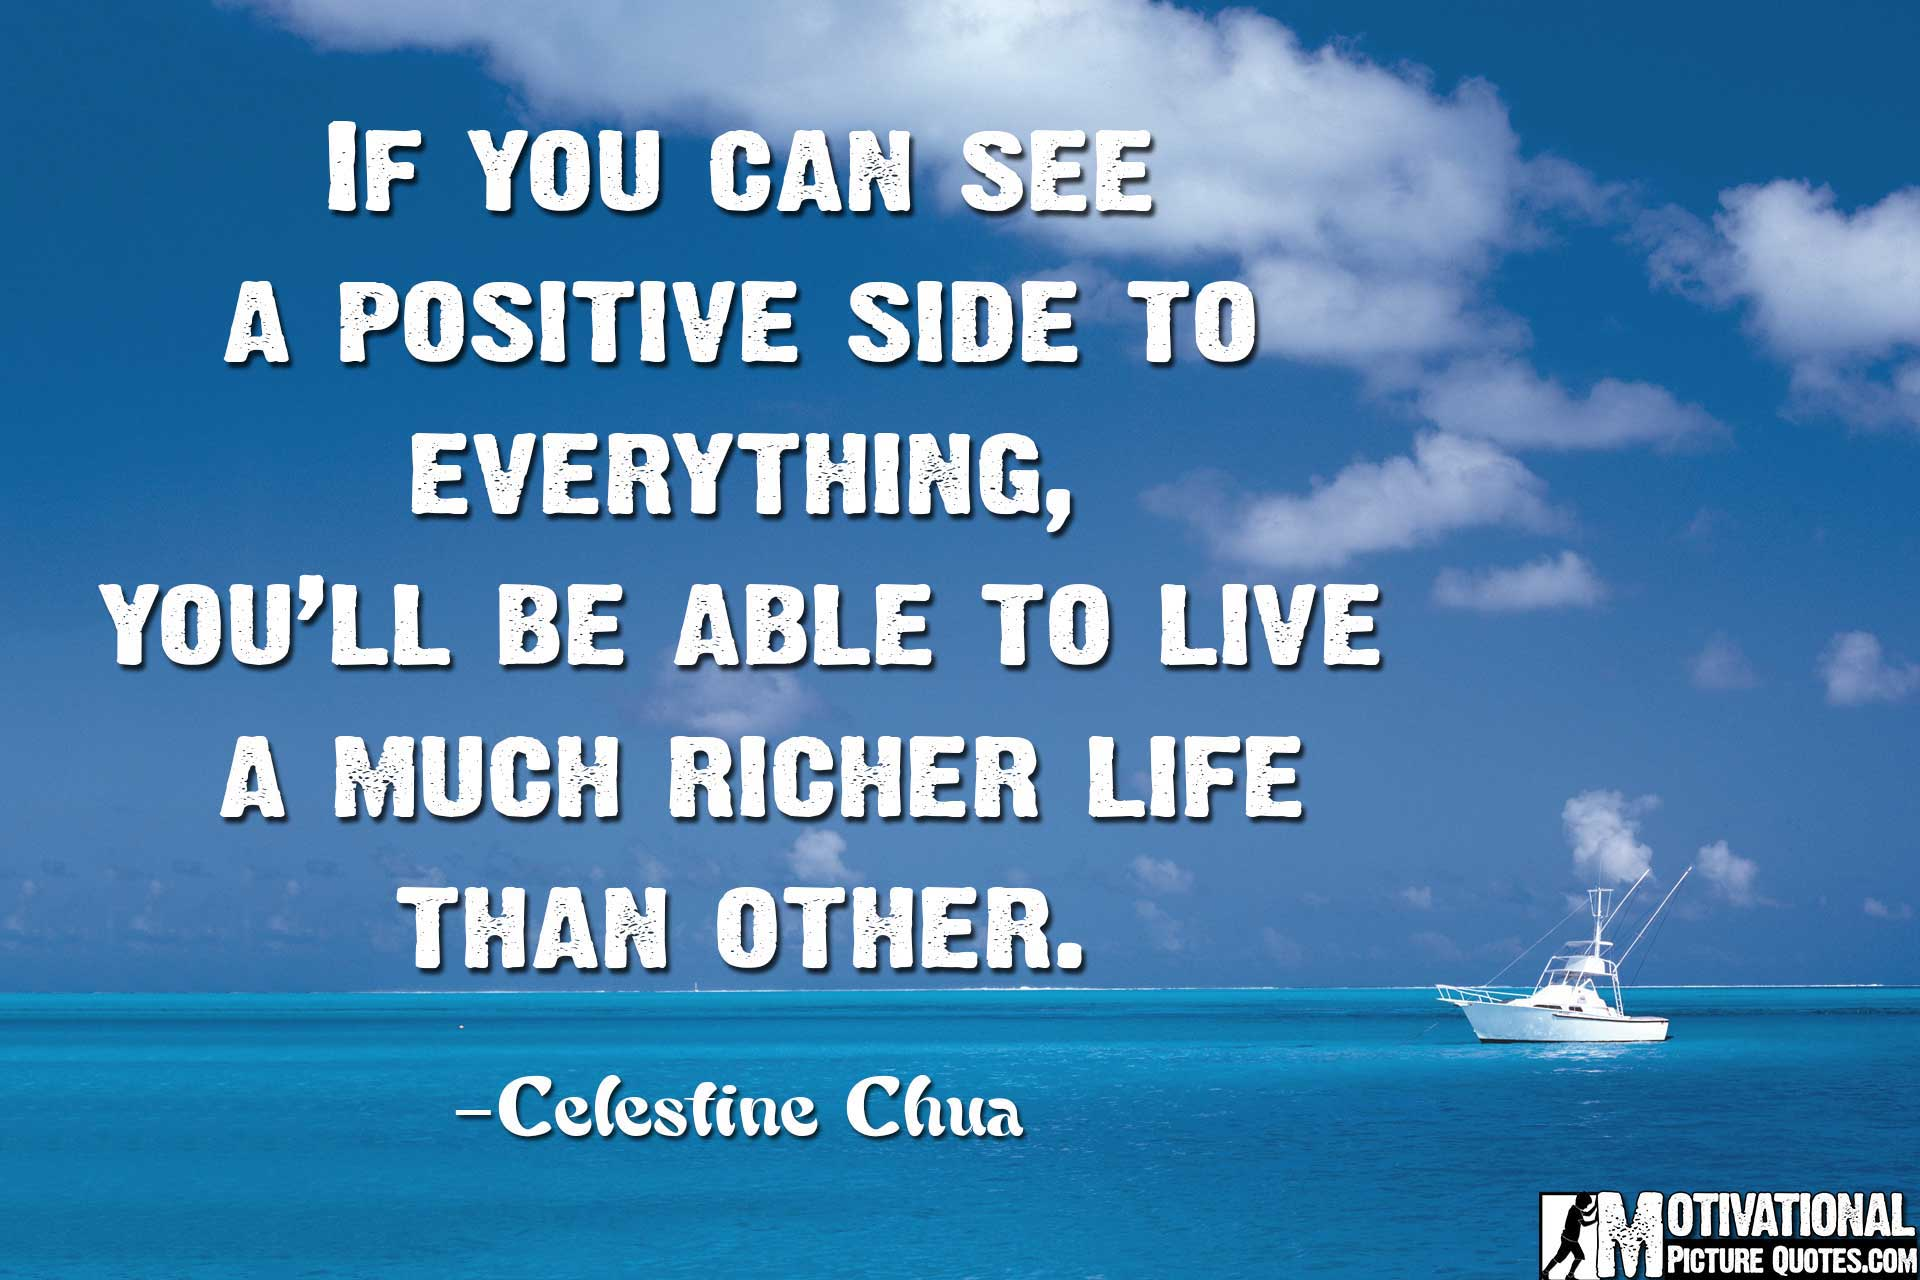 Celestine Chua Positive Thinking Quotes